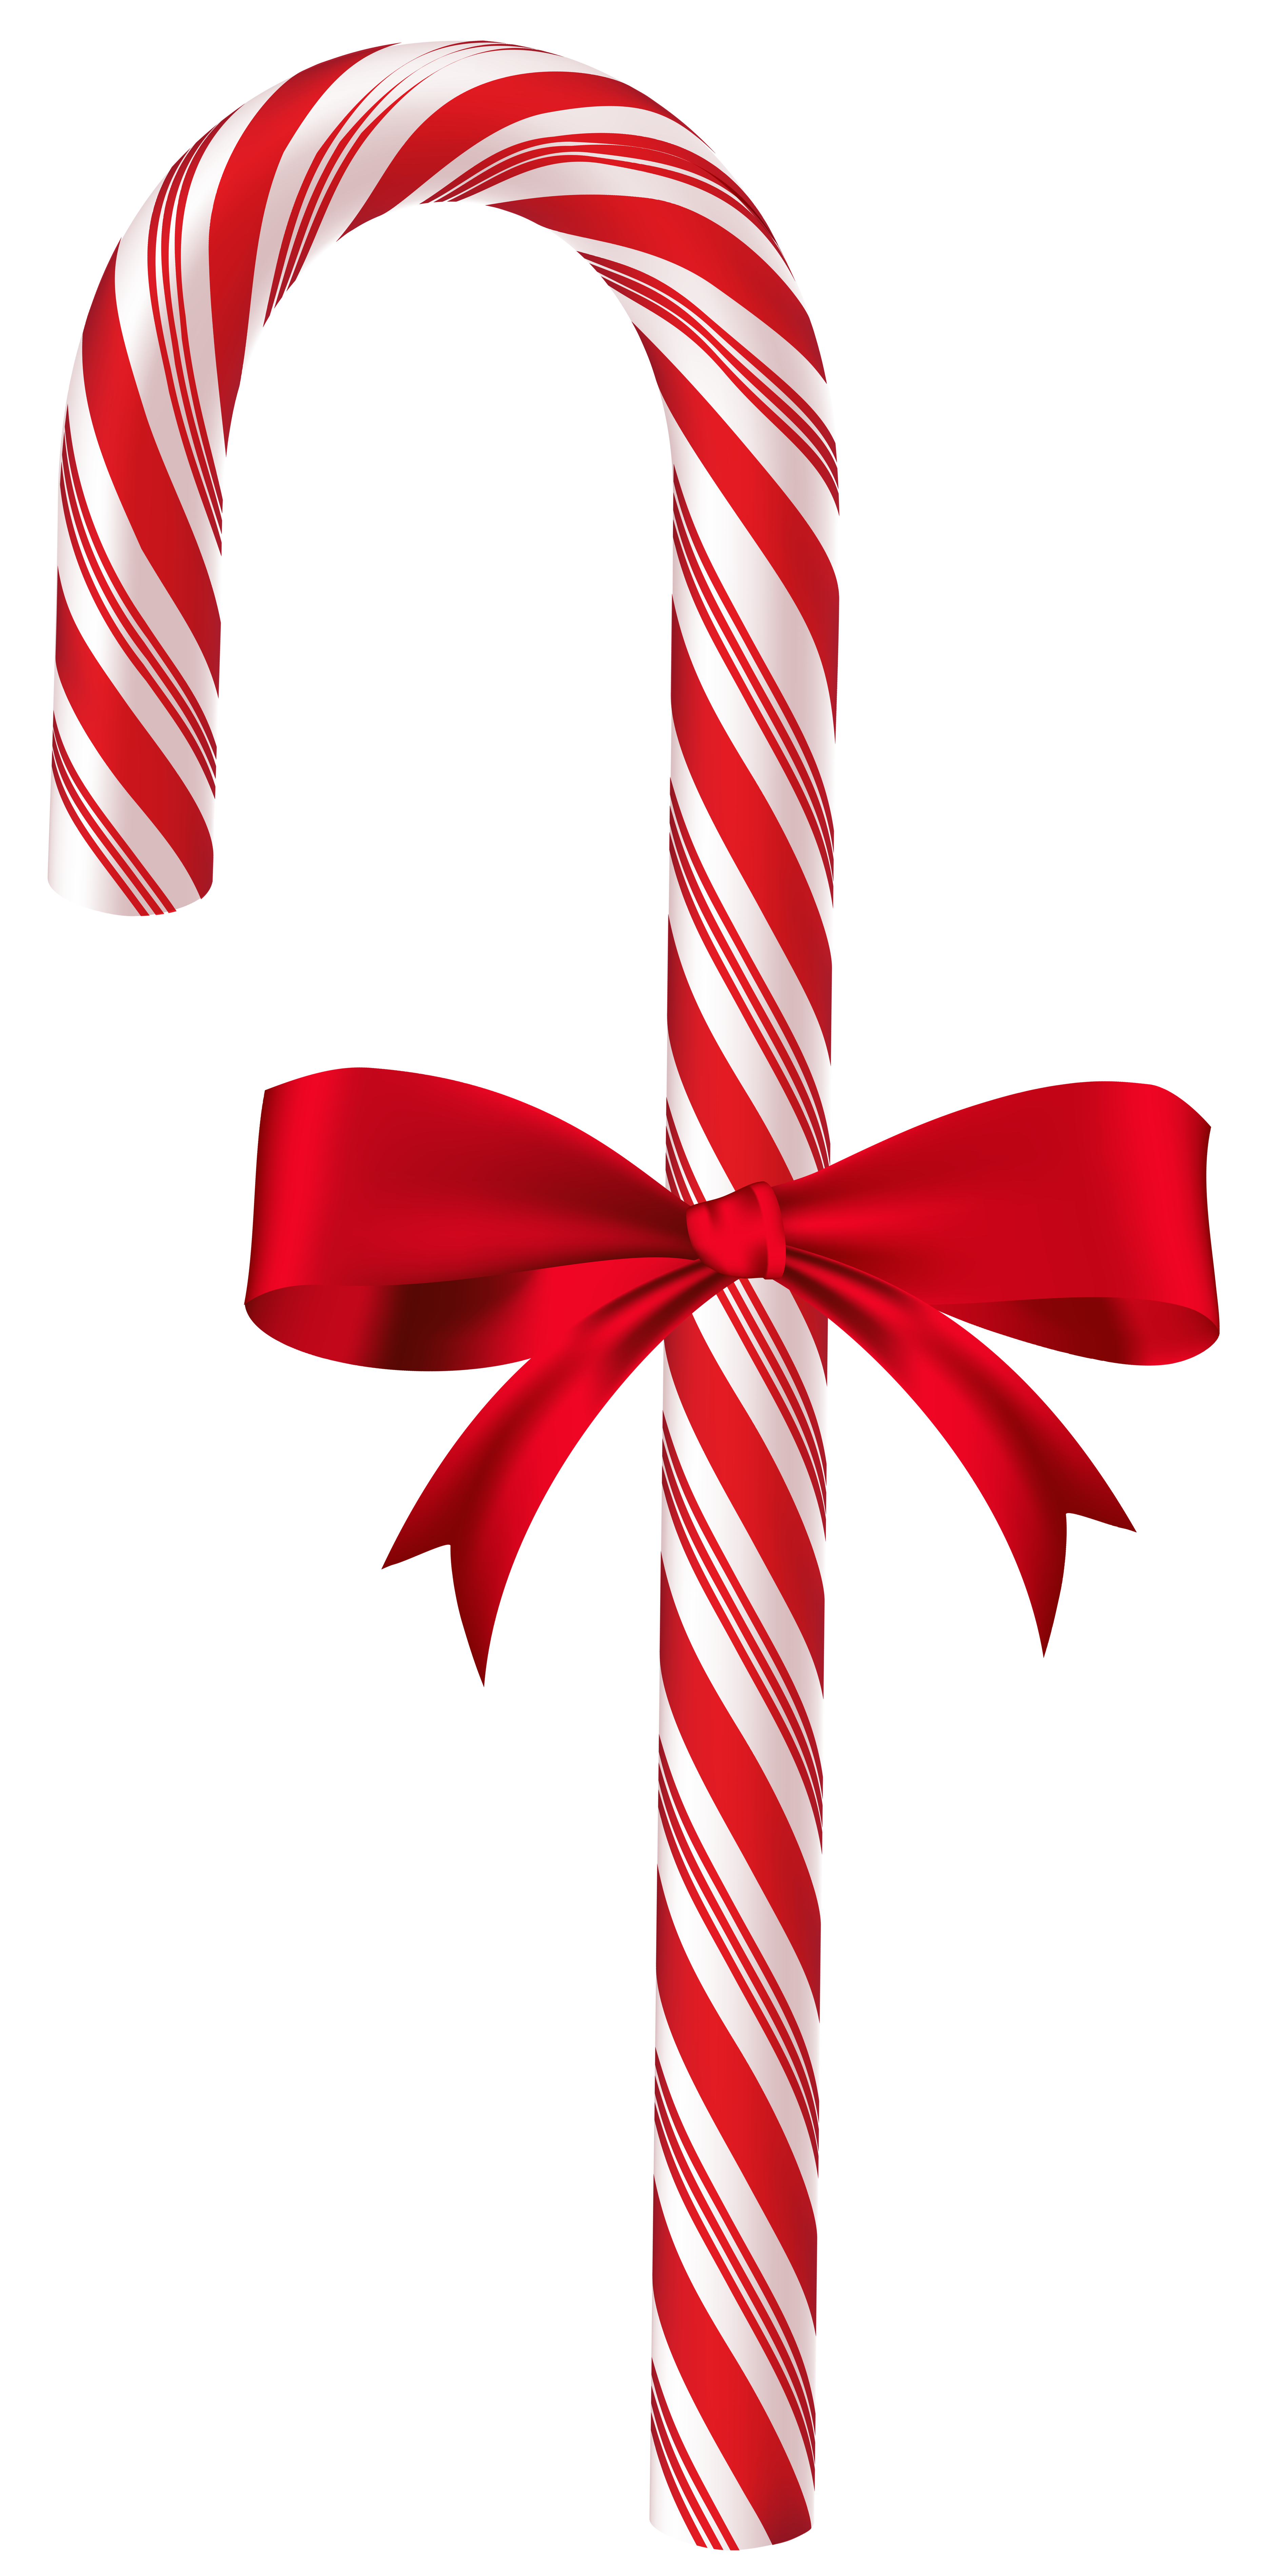 Candy Cane clipart transparent background With  Gallery Image Cane